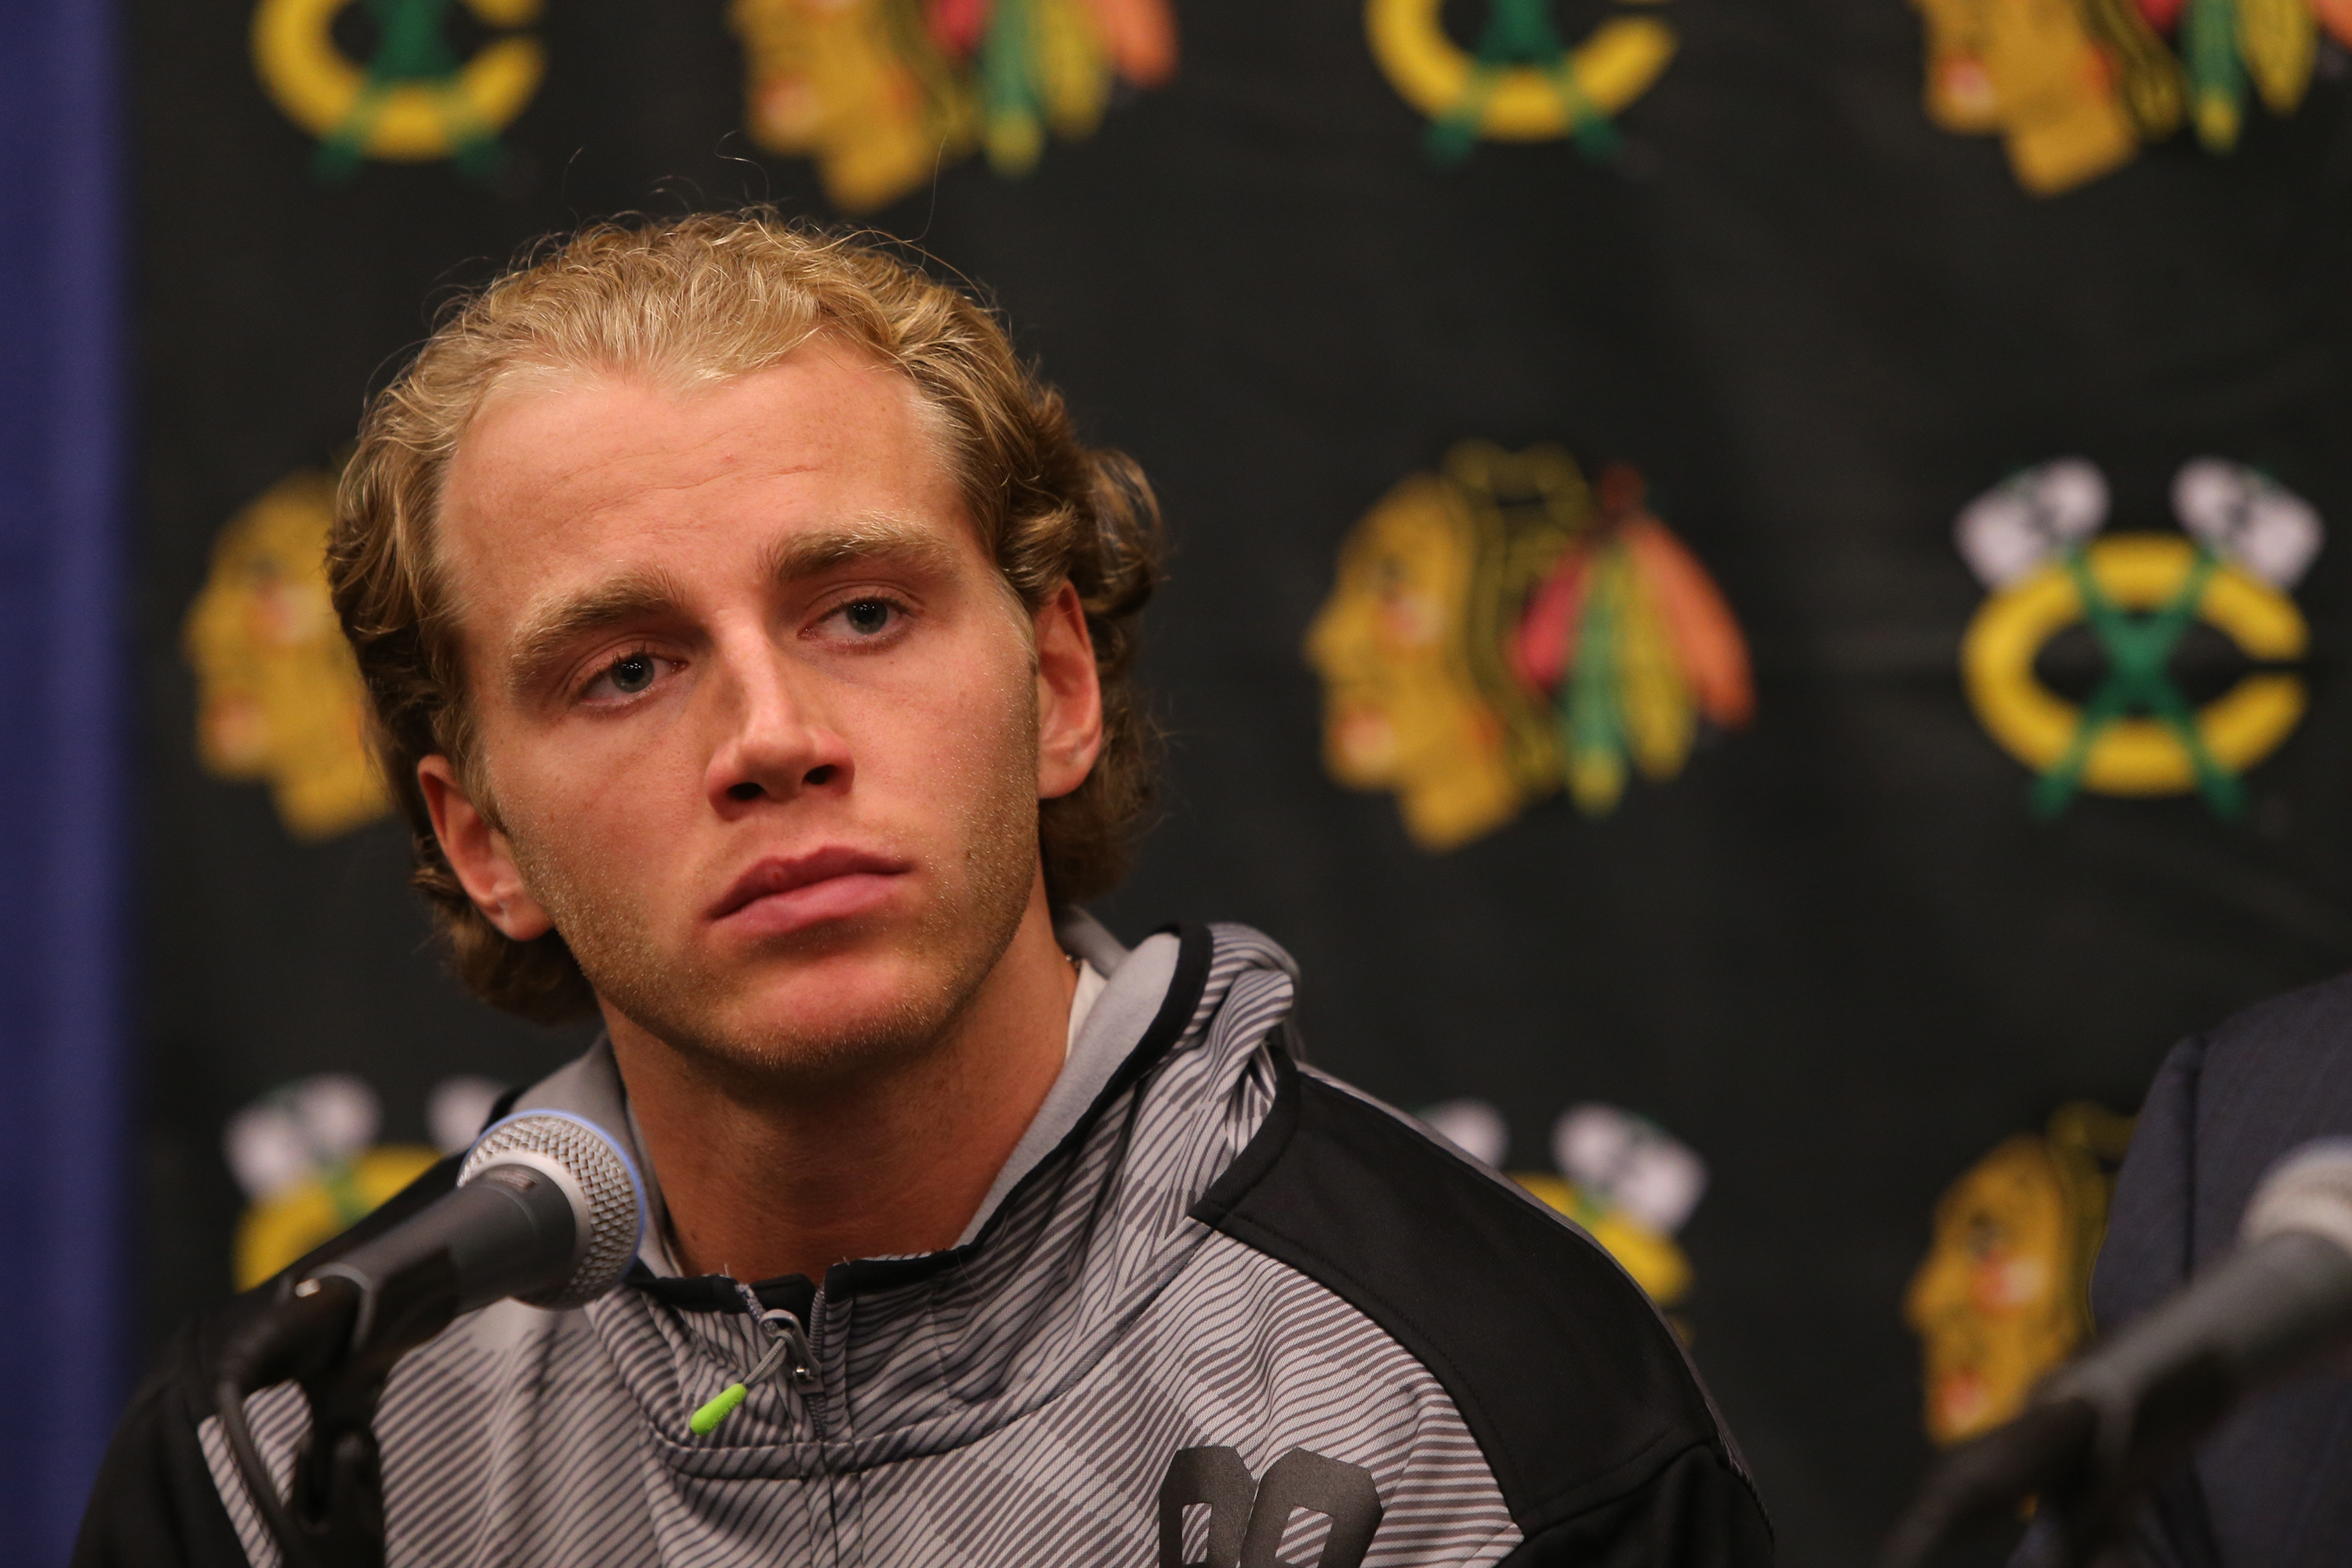 Patrick Kane has denied any wrongdoing.